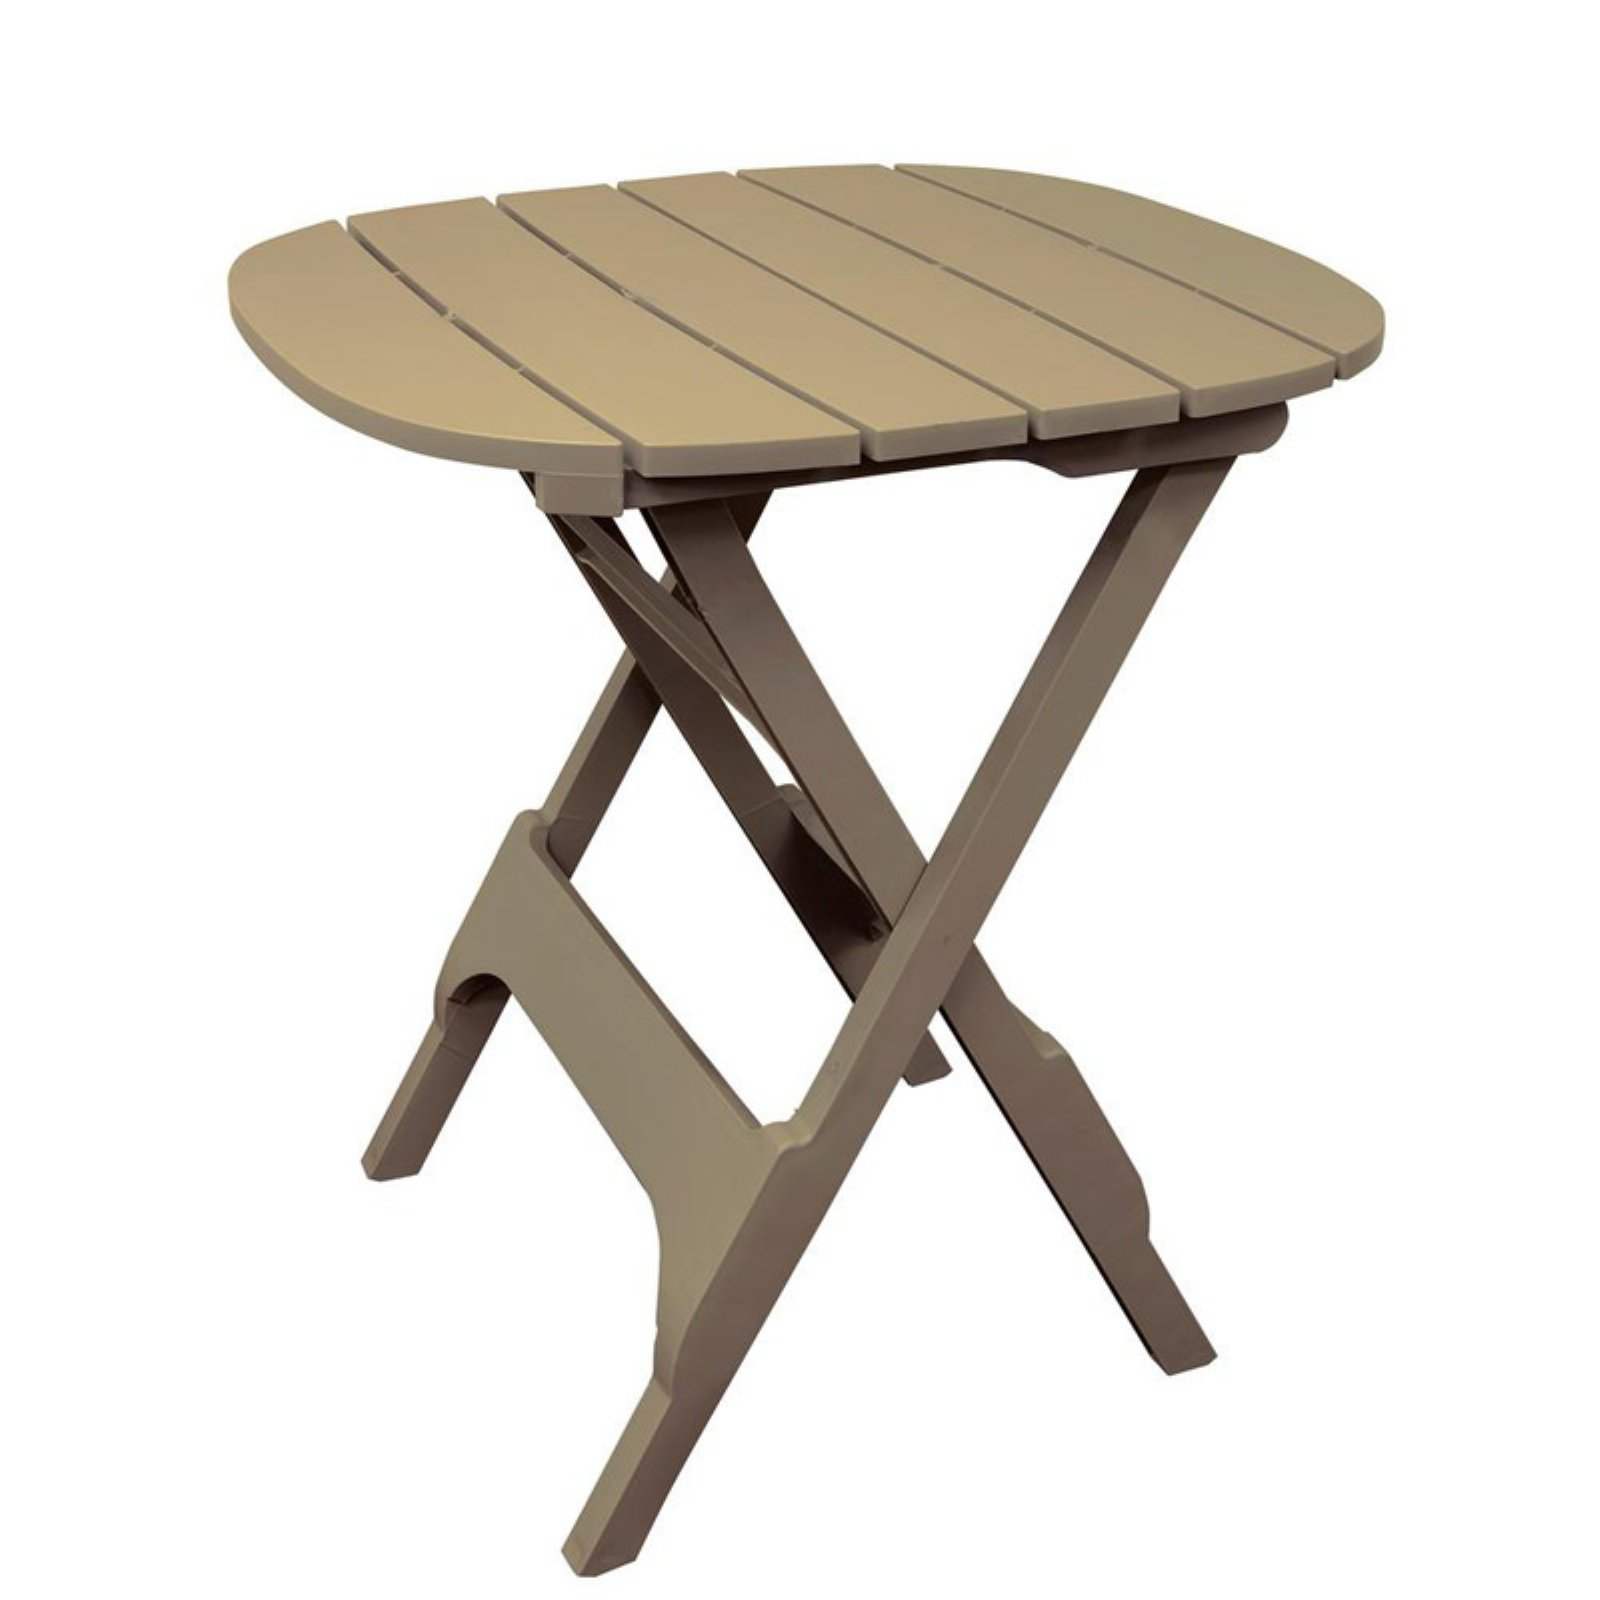 Adams Manufacturing Quik-Fold 34 in. Patio Bistro Table